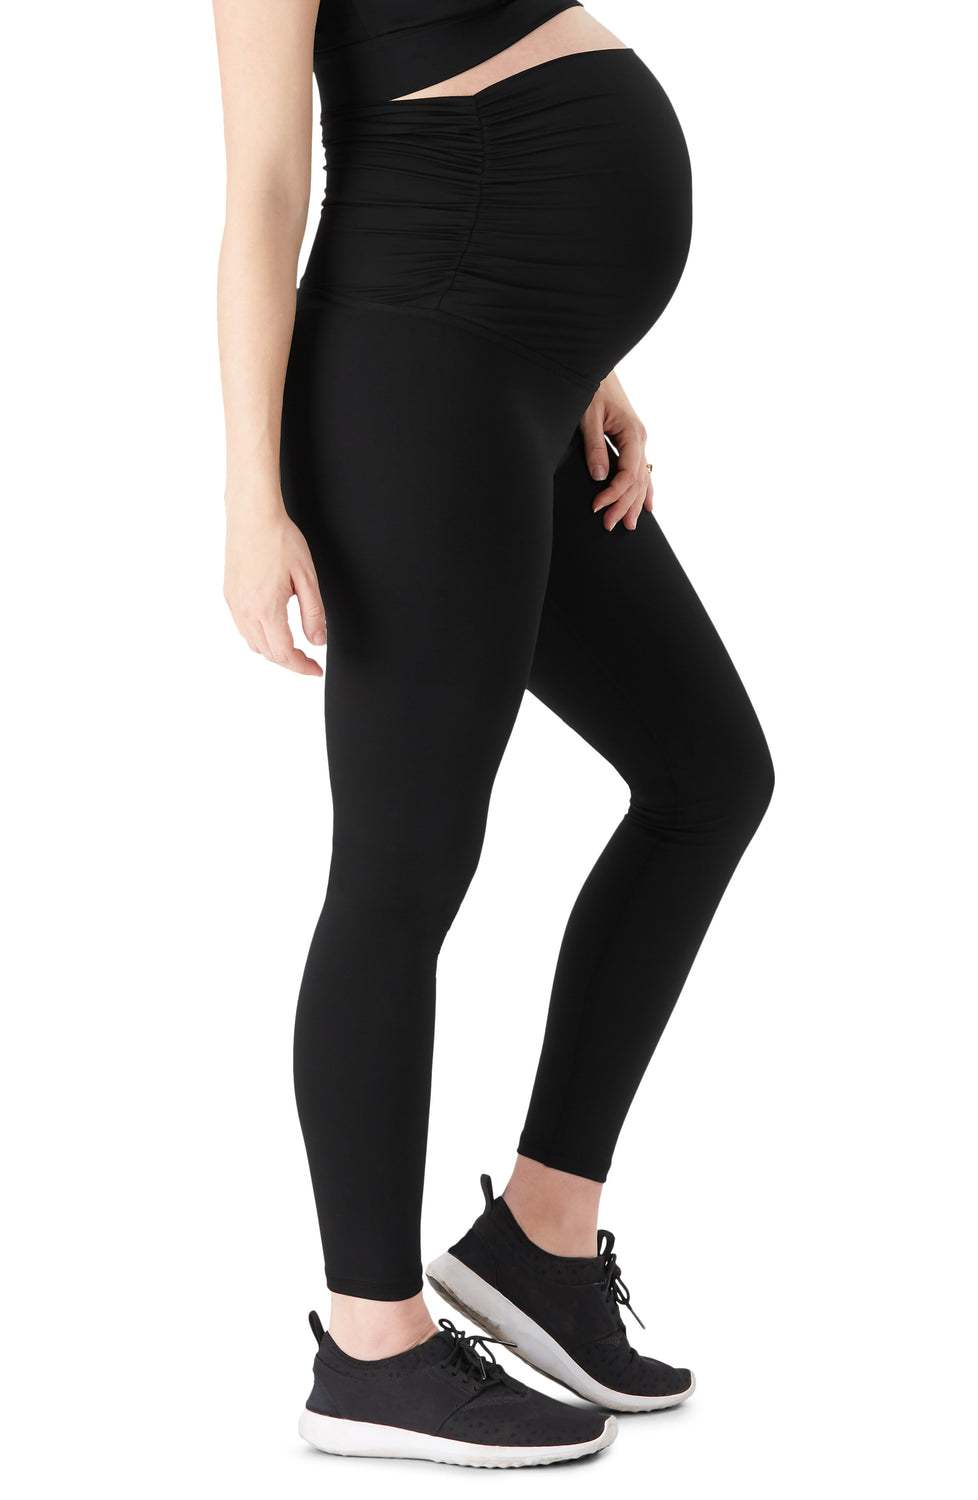 Belly Bandit® ActiveSupport™ Essential Leggings